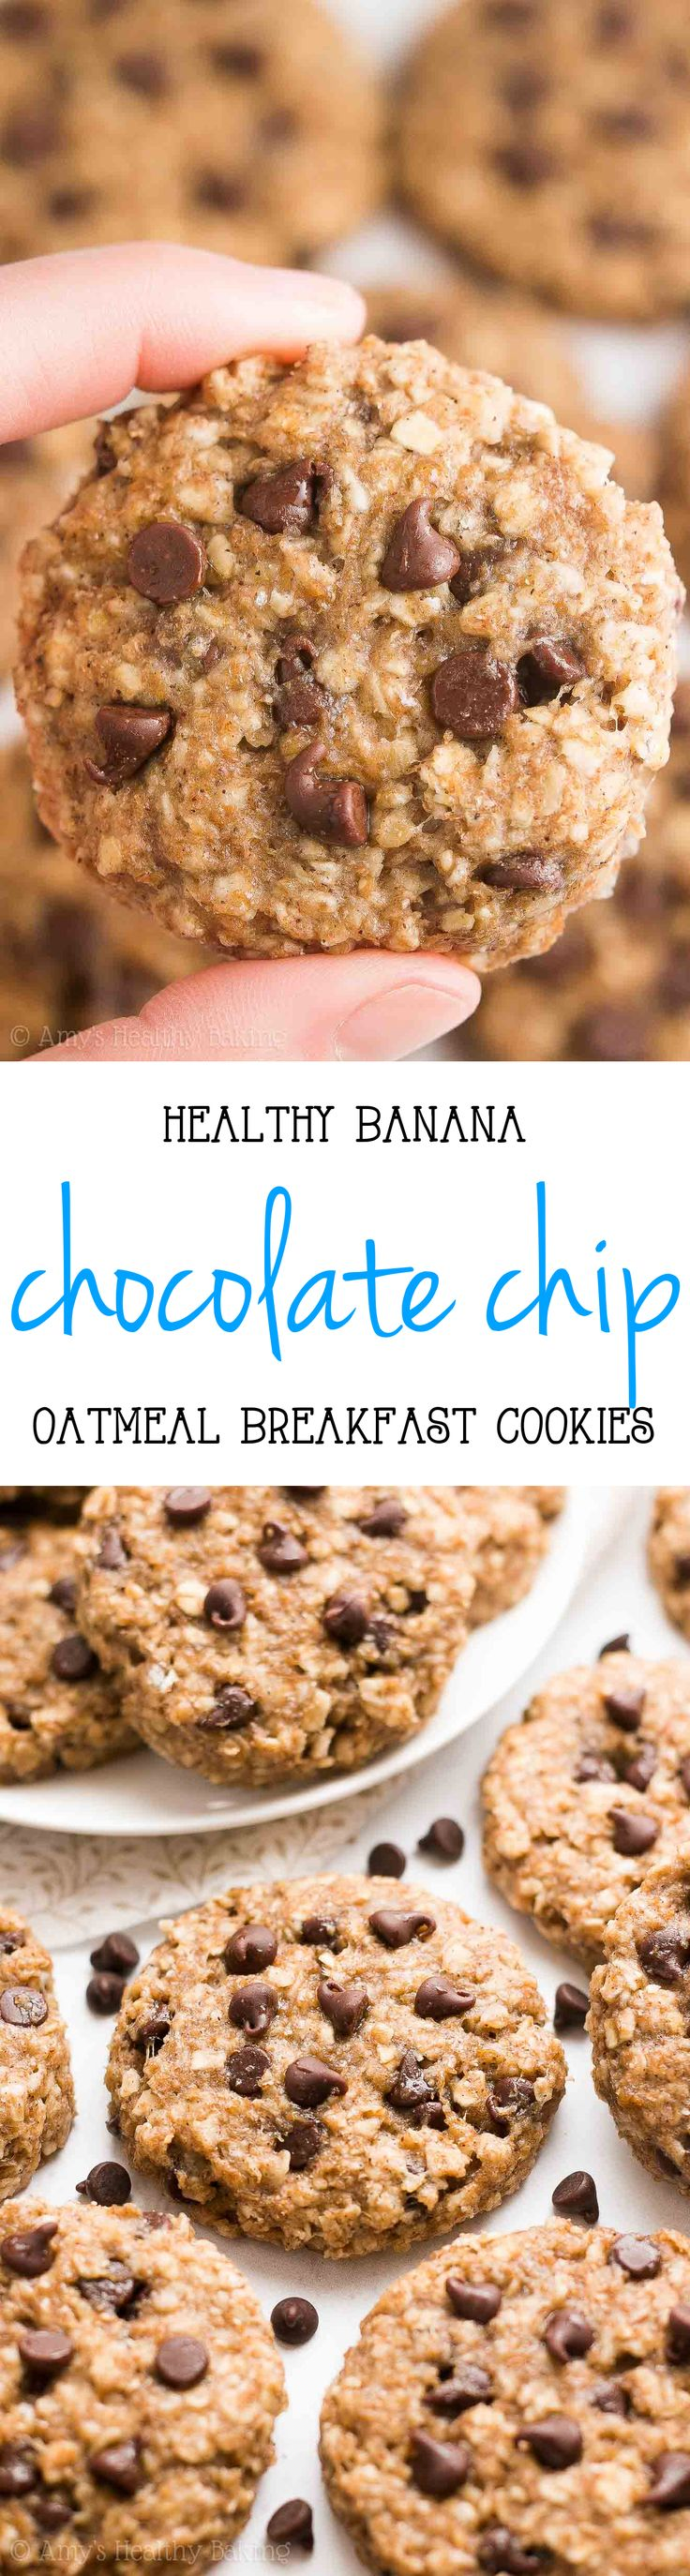 {HEALTHY!} Chocolate Chip Banana Oatmeal Breakfast Cookies -- absolutely AMAZING! Only 78 calories & so easy to make!